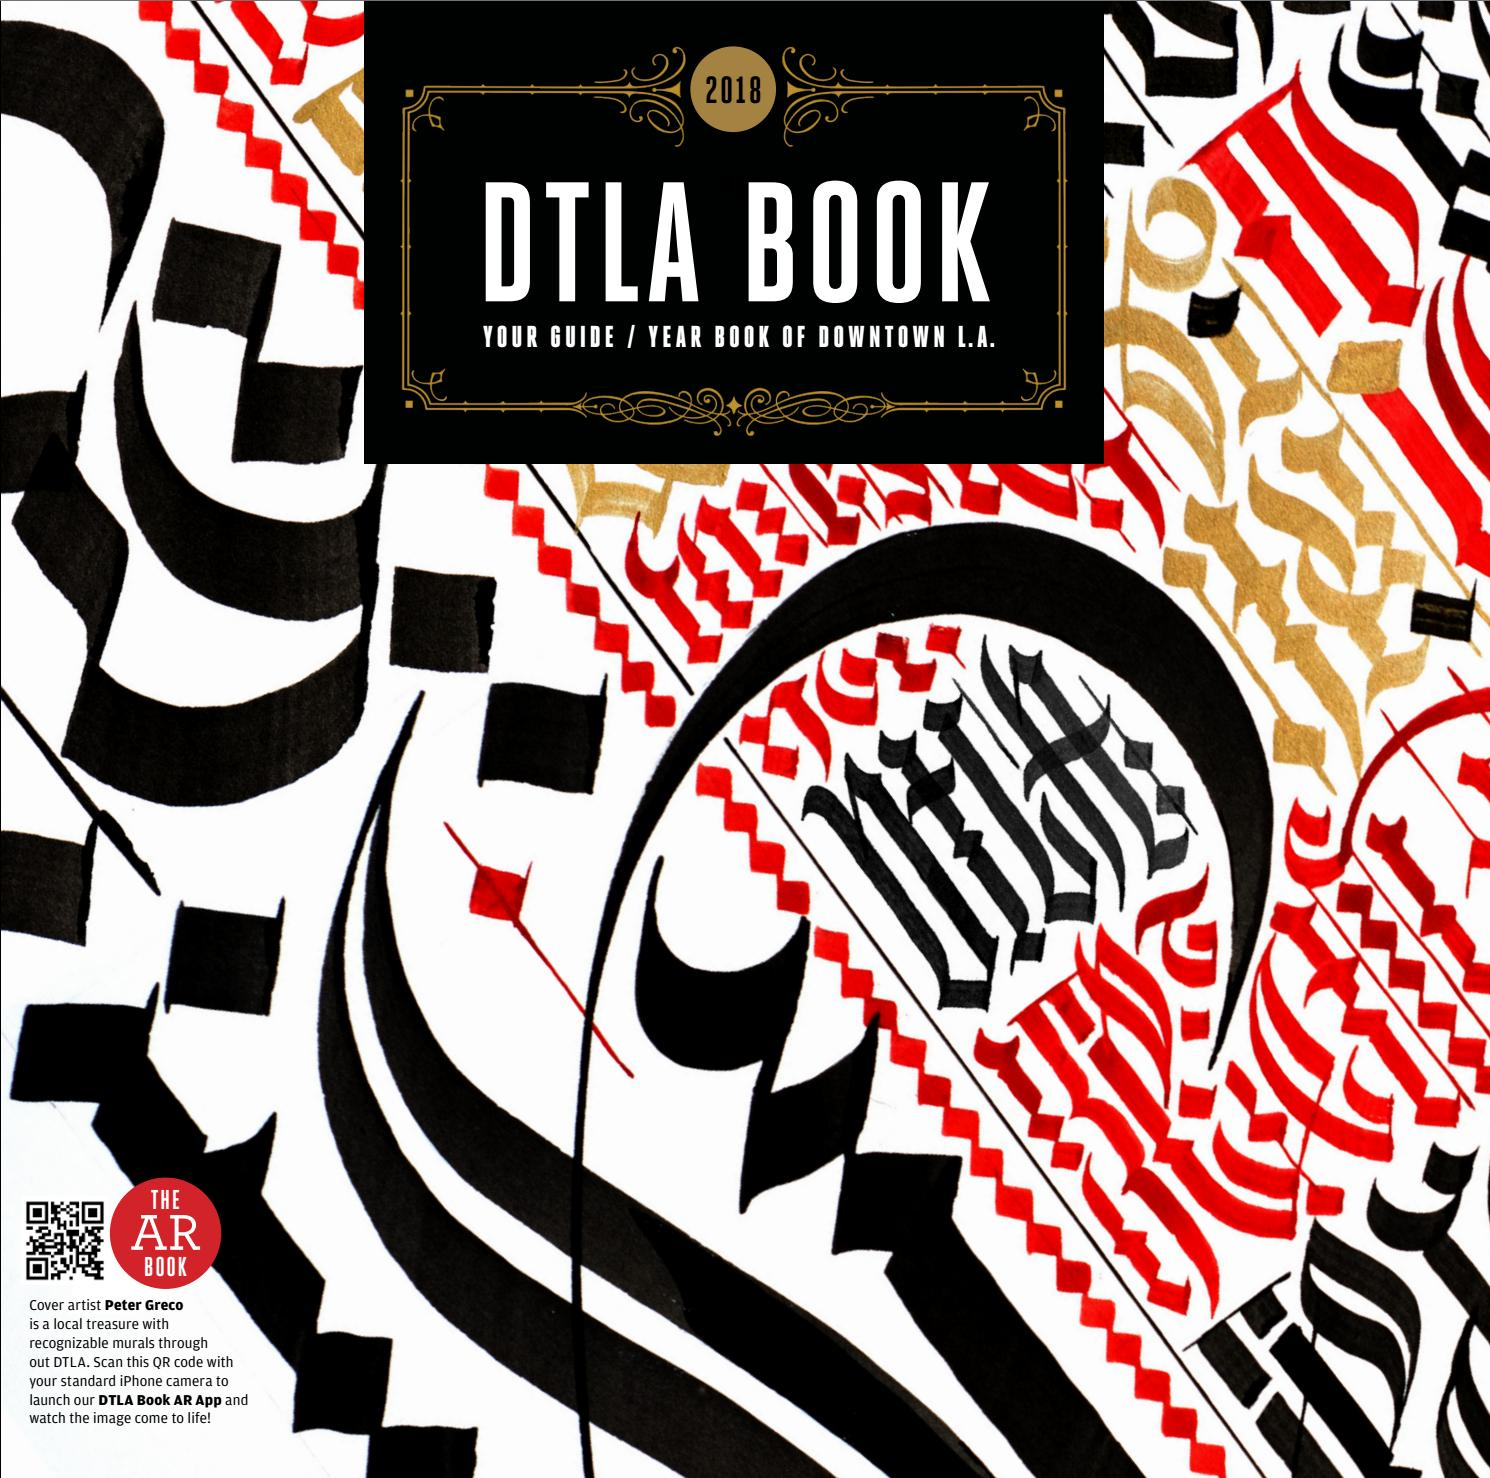 DTLA Book 2018 (Digital Version) by District 8 Media - issuu b77a028f04b7e